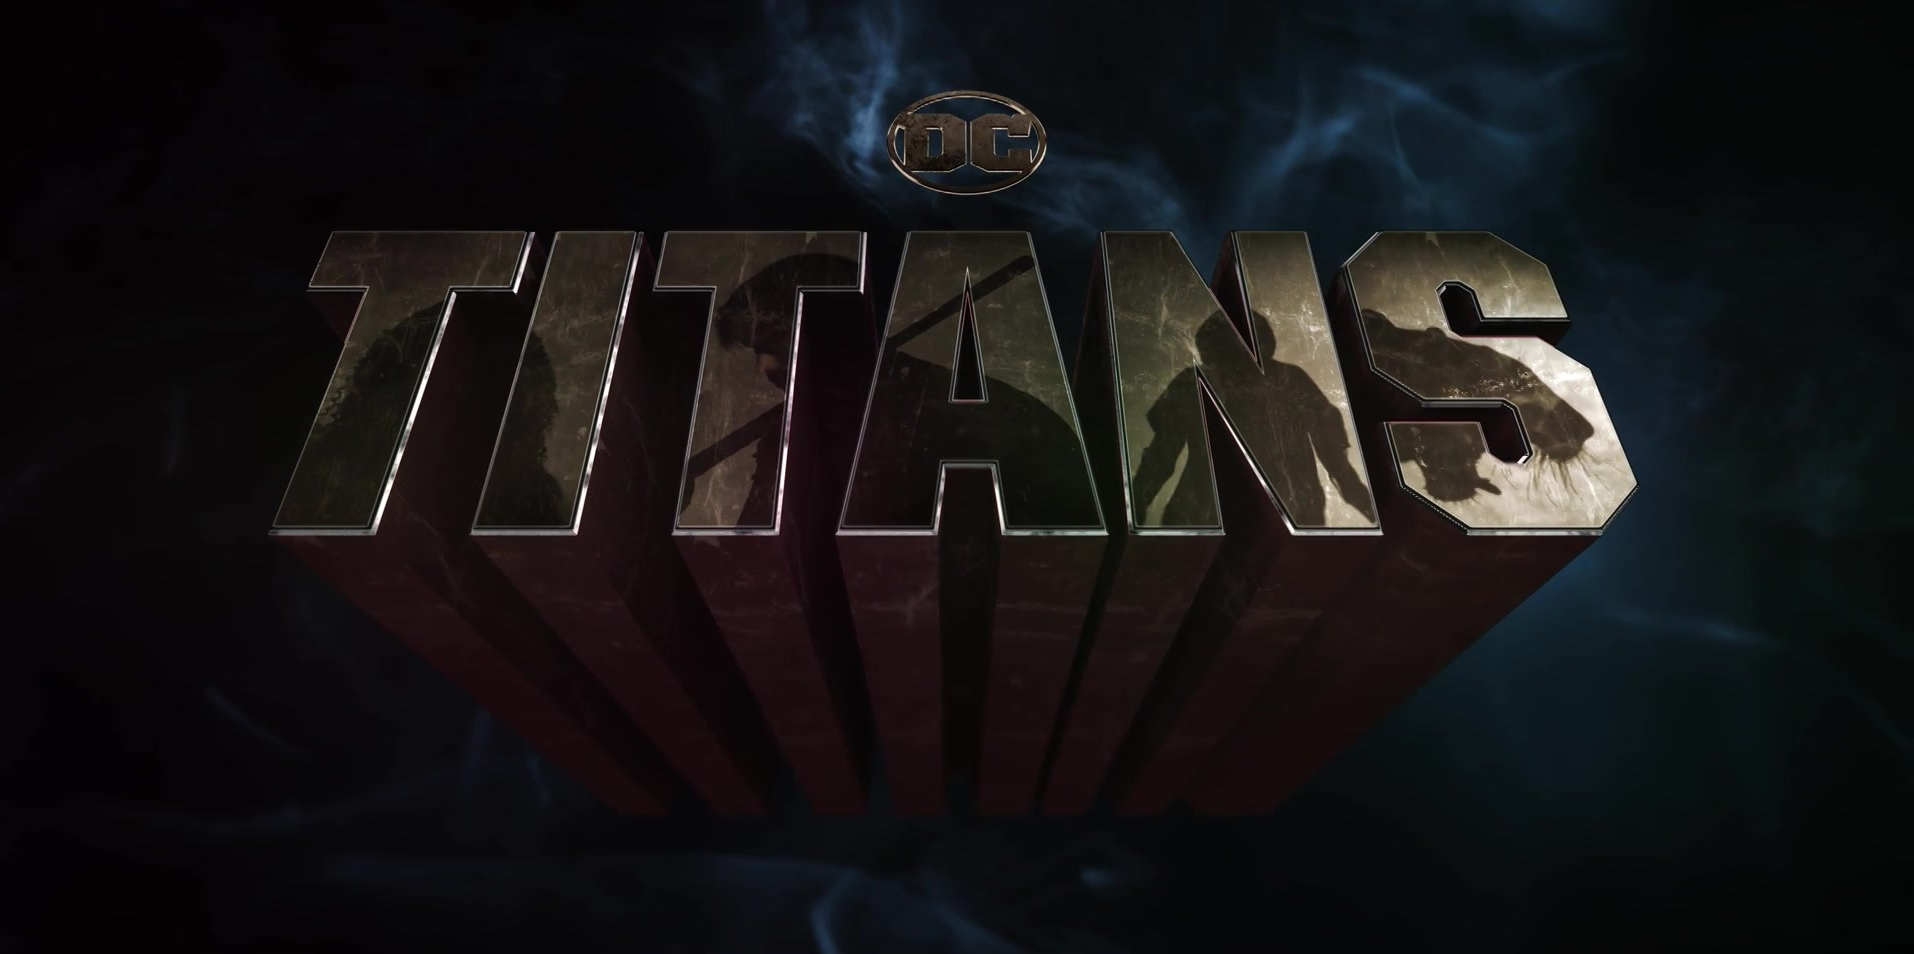 Titans (TV Series) Episode: Dick Grayson